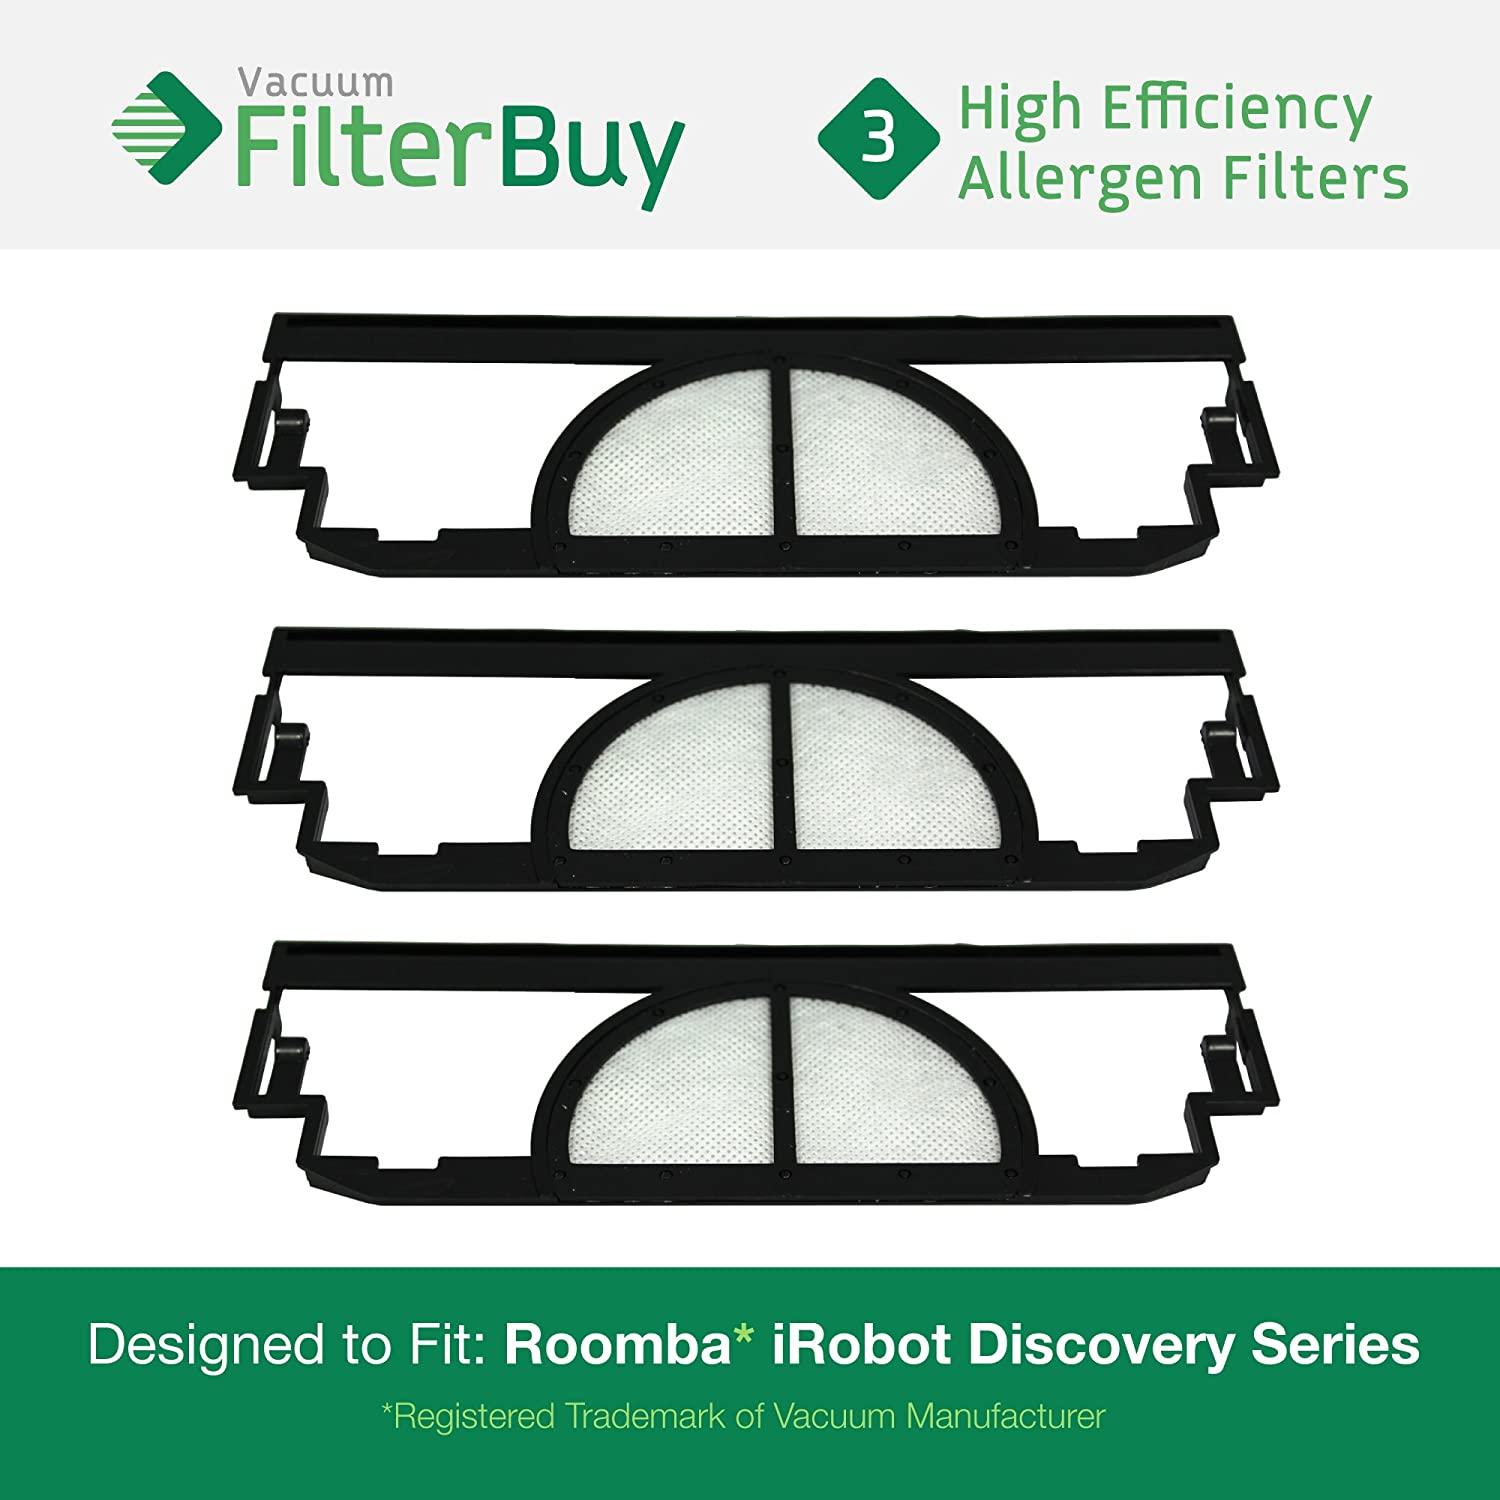 3 Pack iRobot Roomba Discoveryフィルタキット、パーツ# ' s 4910、vp-rm400 – 3 Flt、vprm4003flt。Designed by FilterBuy toフィットiRobot Roomba DiscoveryシリーズVacuum Cleaners B01MU2H0CT